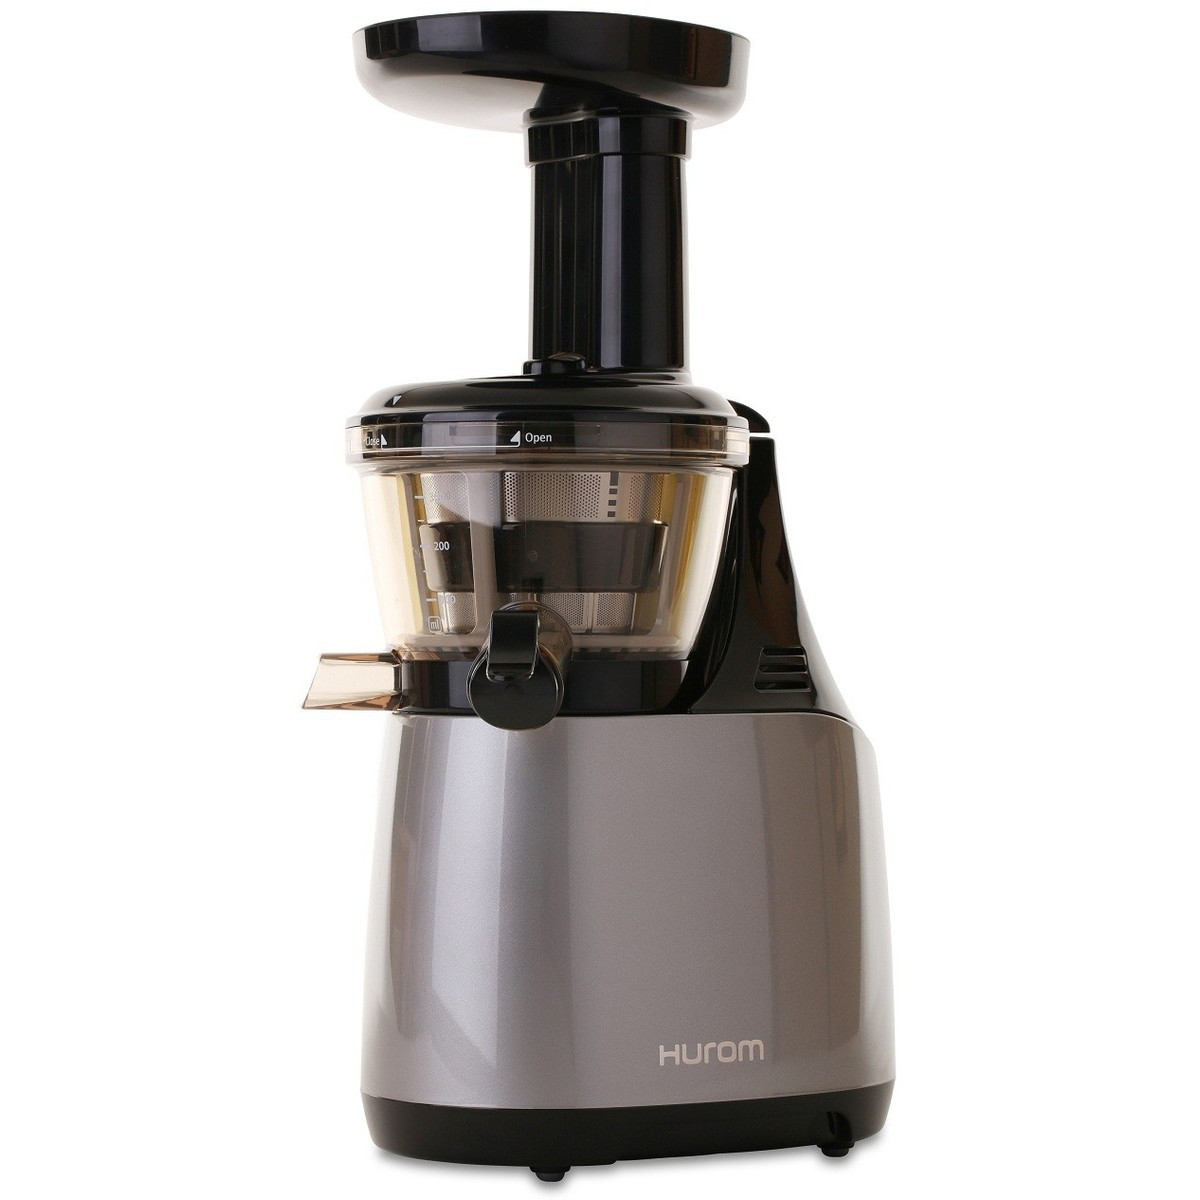 Slow Juicer Hurom Hp Series : Hurom Slow Juicer HU-500 HE Series - Juicers.ie Ireland s No 1 Juicers website